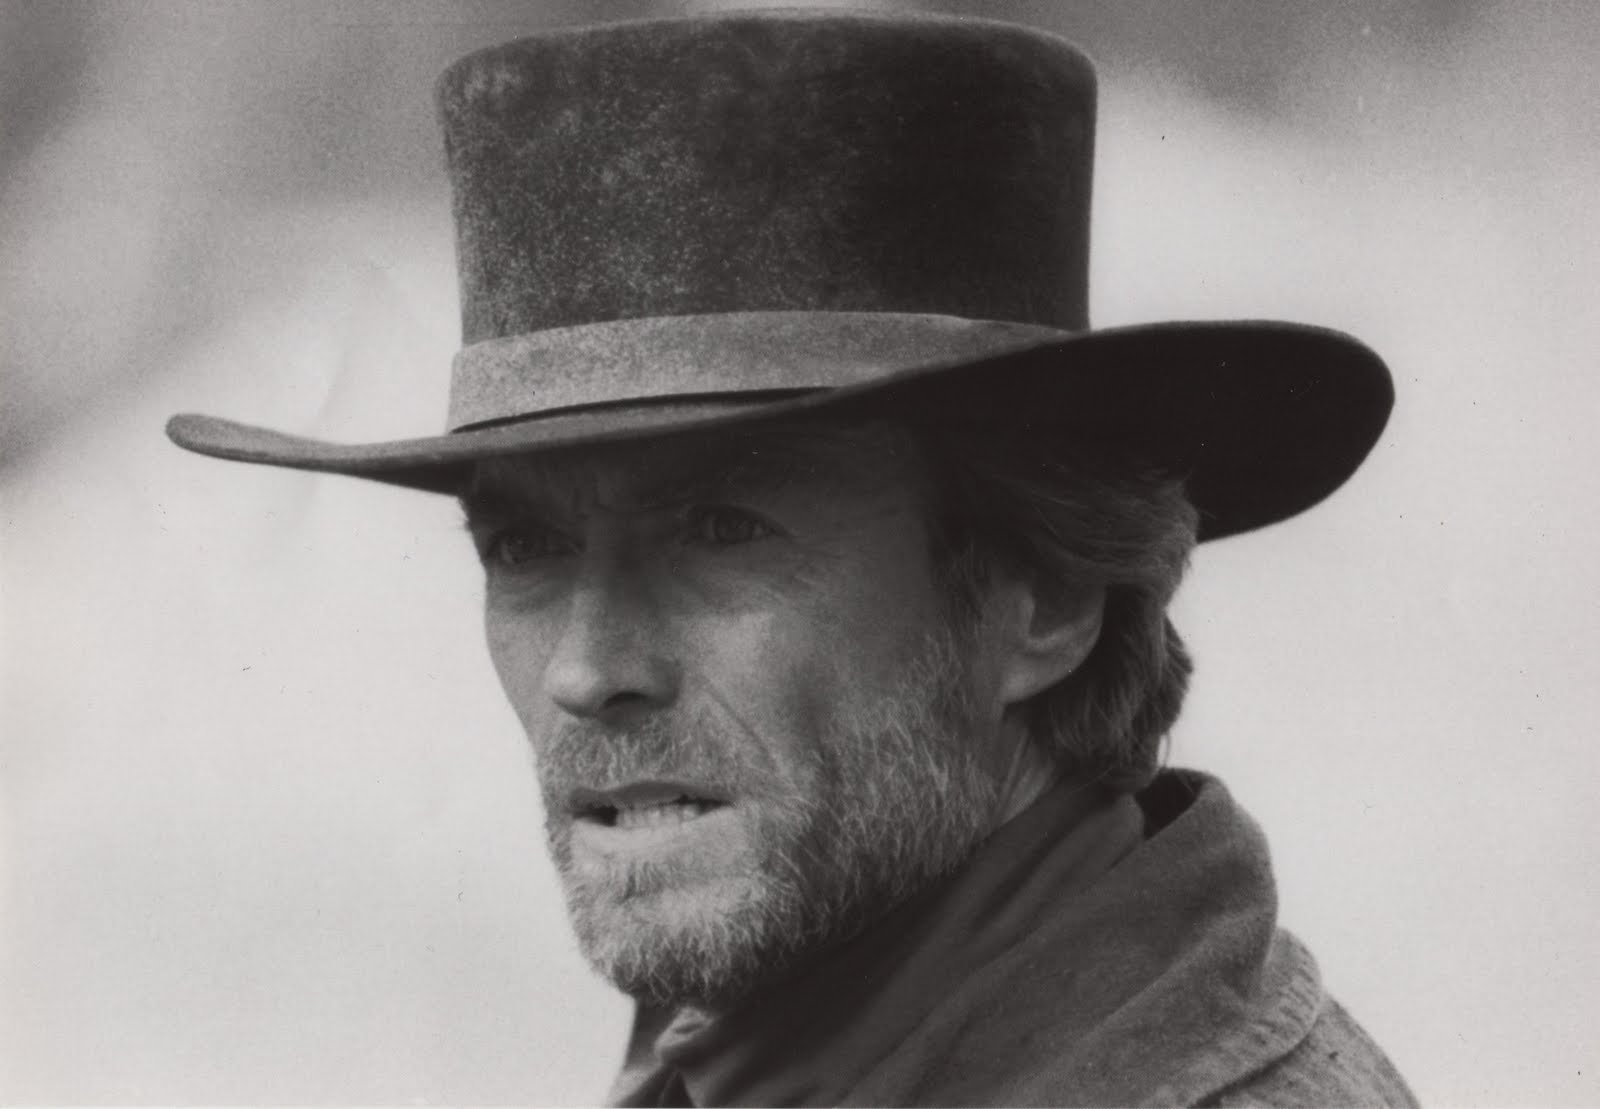 Clint Eastwood Cowboy Wallpaper: Clint Eastwood Wallpaper And Background Image